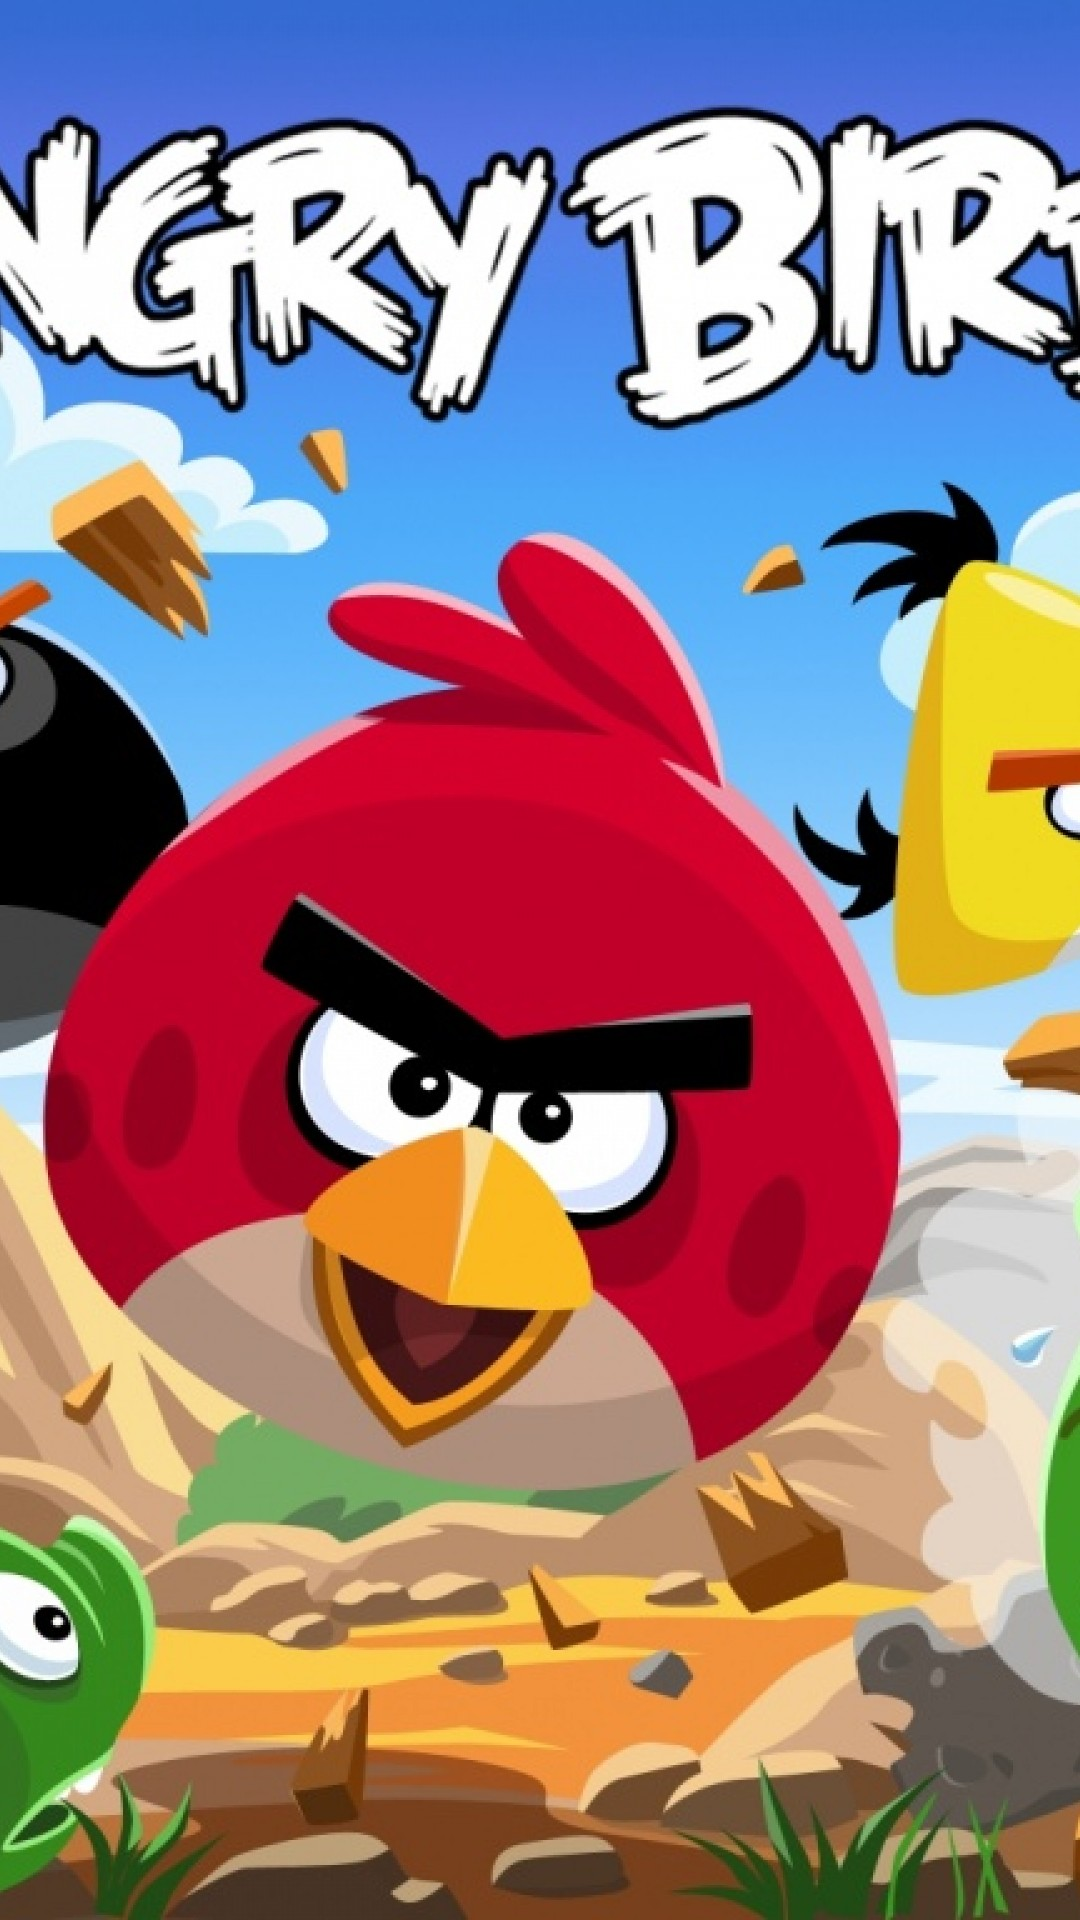 Free Download Angry Birds Hd Wallpaper For Desktop And Mobiles Iphone 6 6s Plus Hd Wallpaper Wallpapers Net